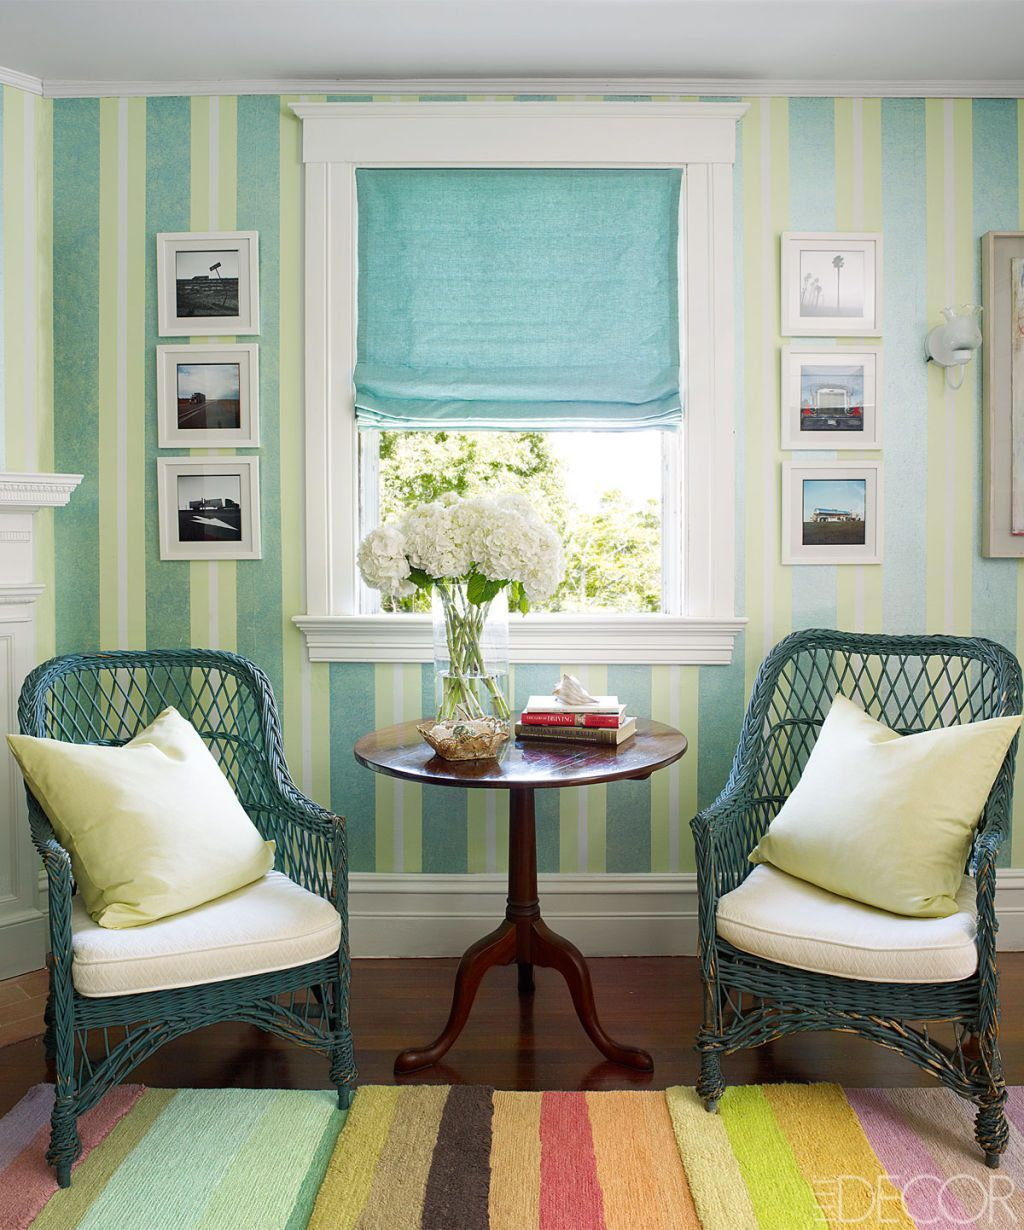 Beach House Decorating Ideas: 20 Gorgeous Beach House Decor Ideas